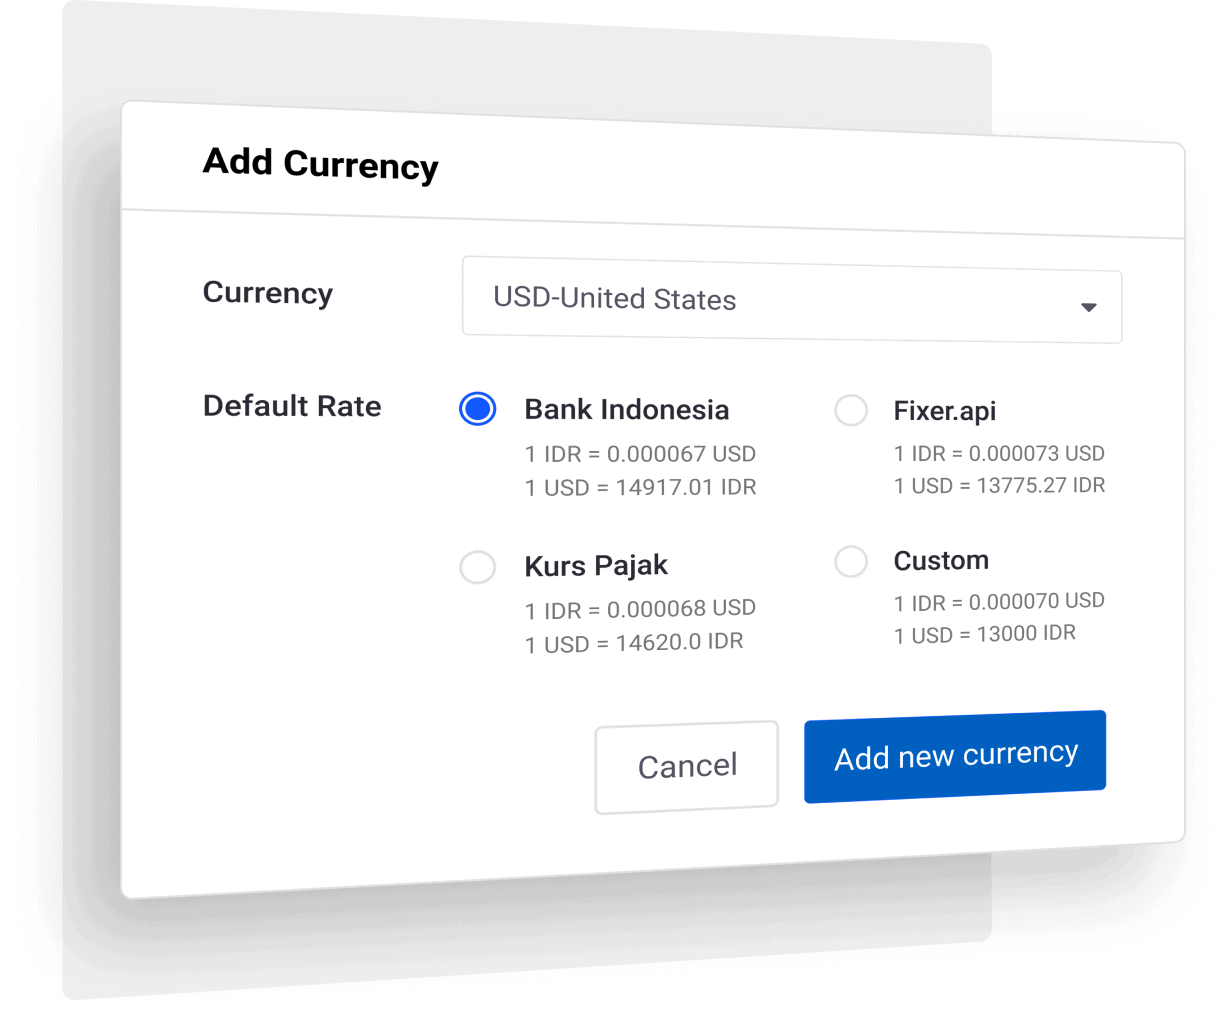 Real time exchange rates with bank rates, taxes and custom